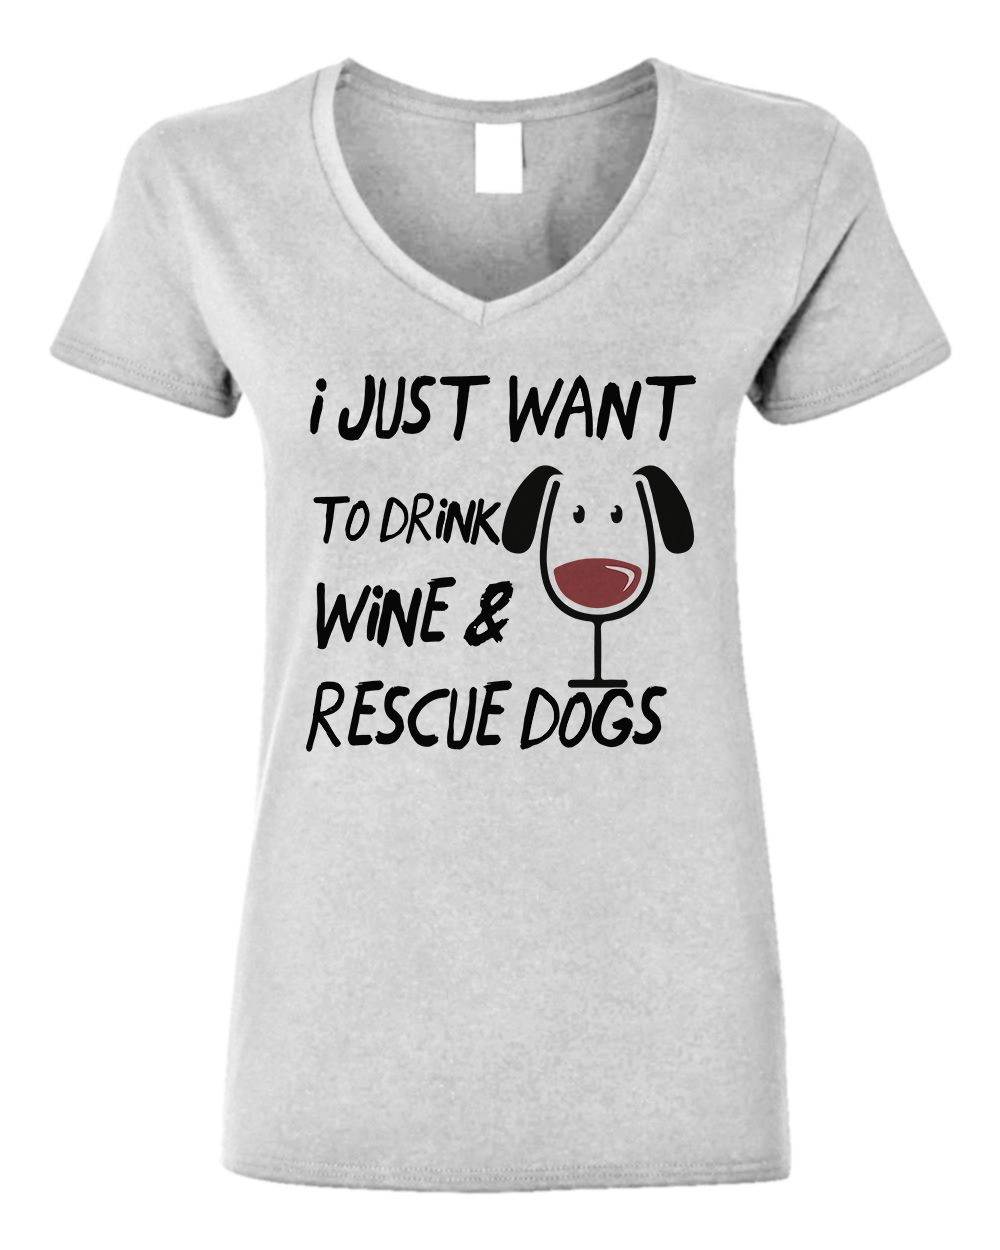 b418d96e5f8 i just want to drink wine   rescue dogs Please note this shirt is a more  slim fitting than our other crew neck t-shirts. Please view the size chart  link ...